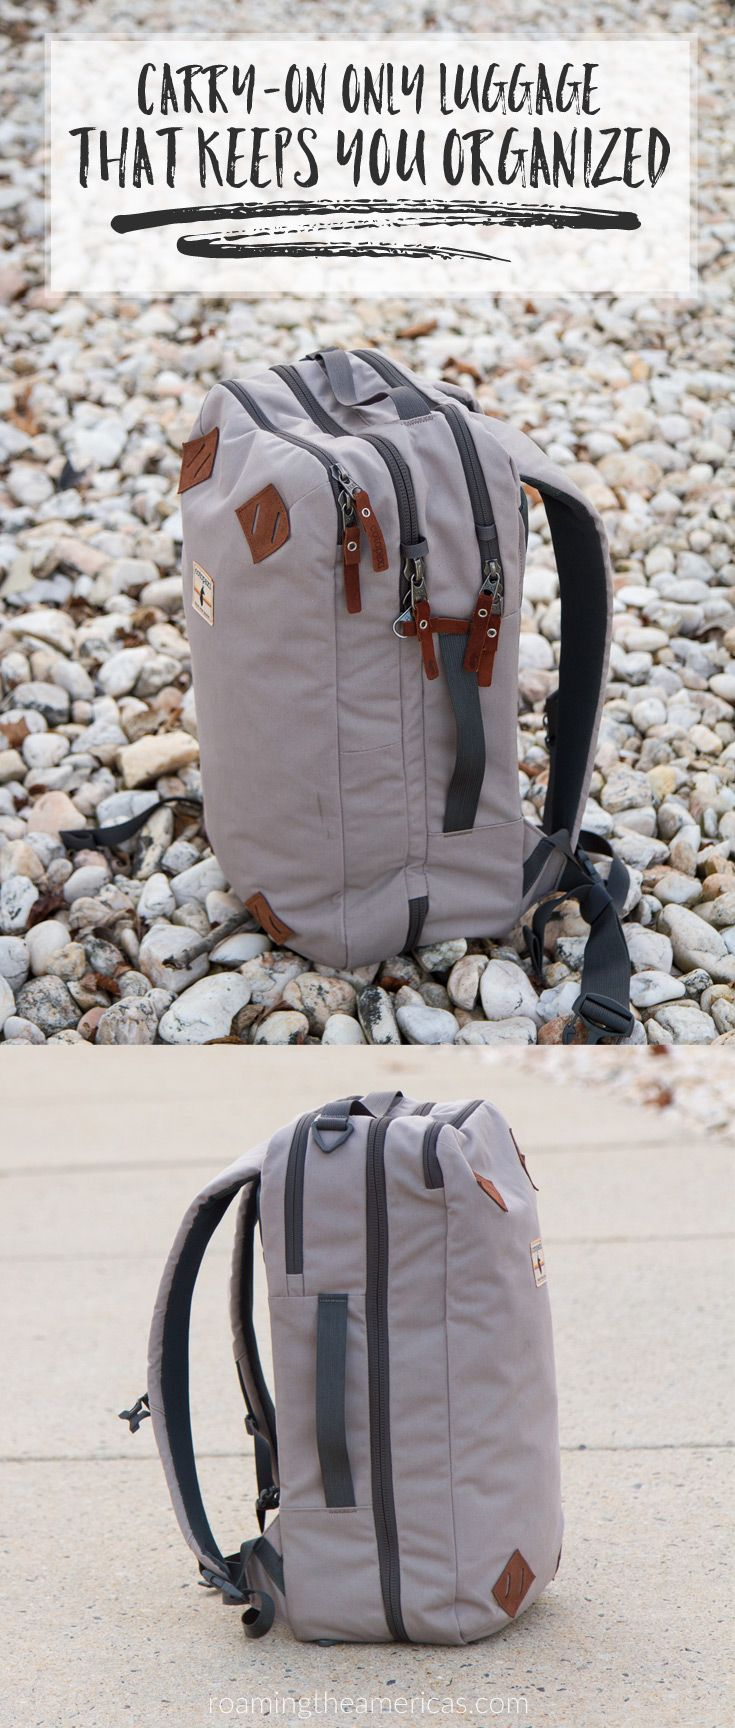 24l Army Bags - b1b8d0560cadf6eca8cfdb90510819d4--backpack-suitcase-travel-backpack-carry-on_Most Inspiring 24l Army Bags - b1b8d0560cadf6eca8cfdb90510819d4--backpack-suitcase-travel-backpack-carry-on  Image_34191.jpg